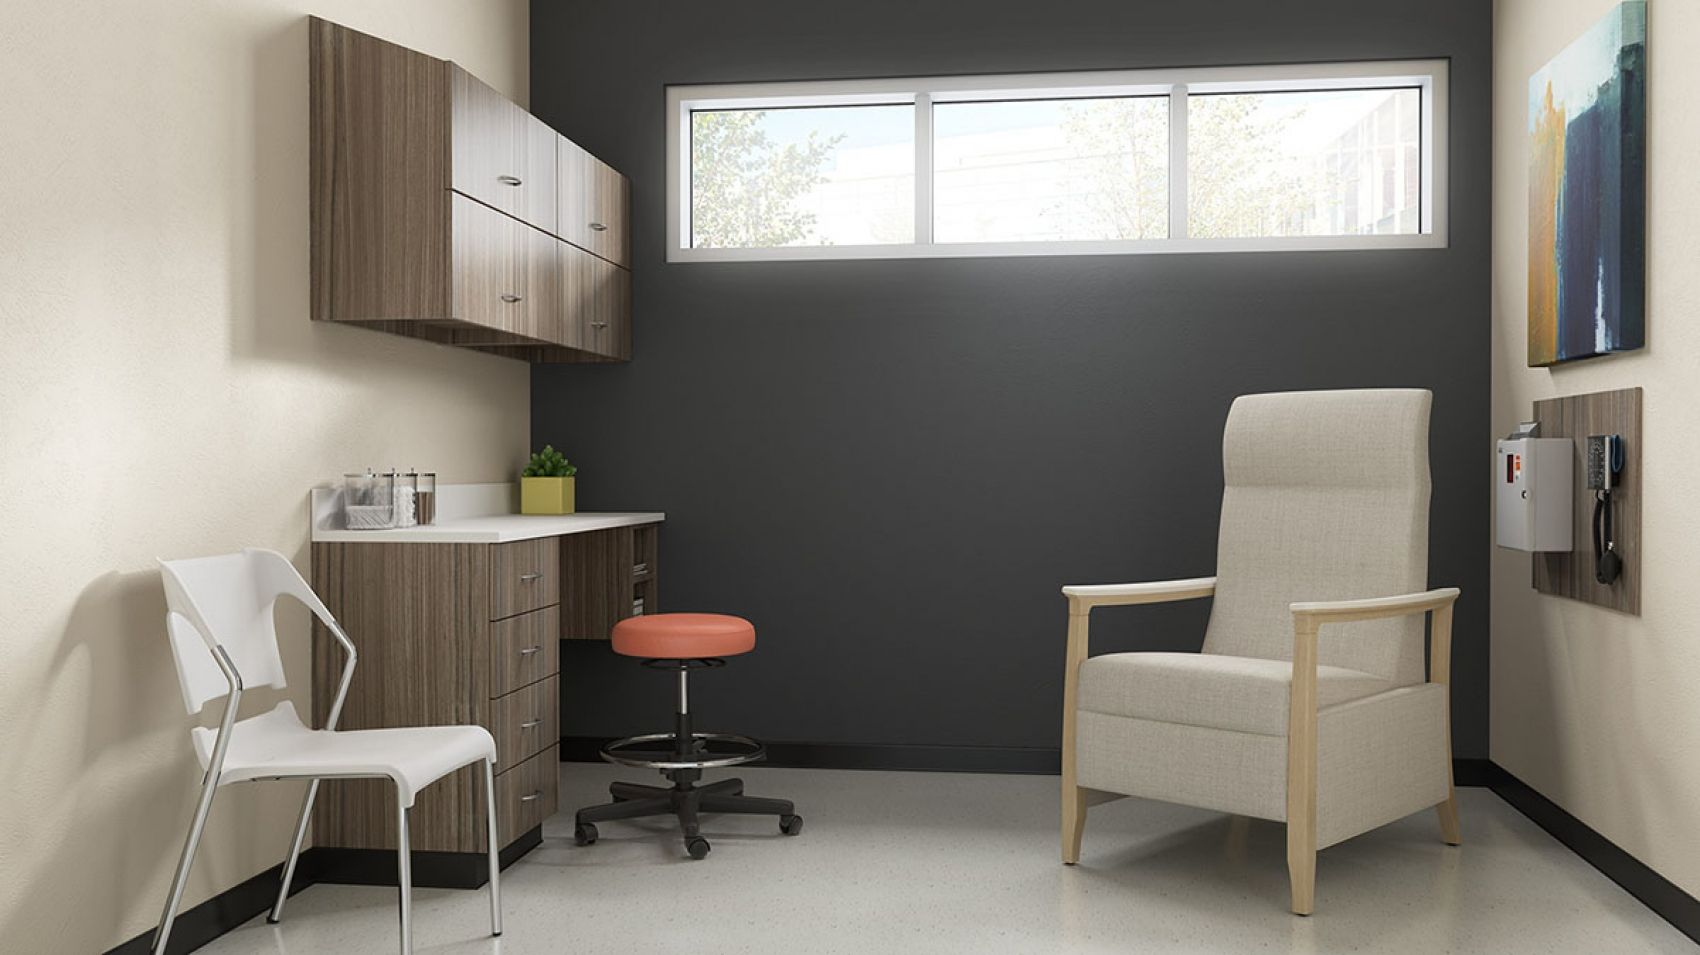 Healthcare OFS Brands Healthcare design, Room design